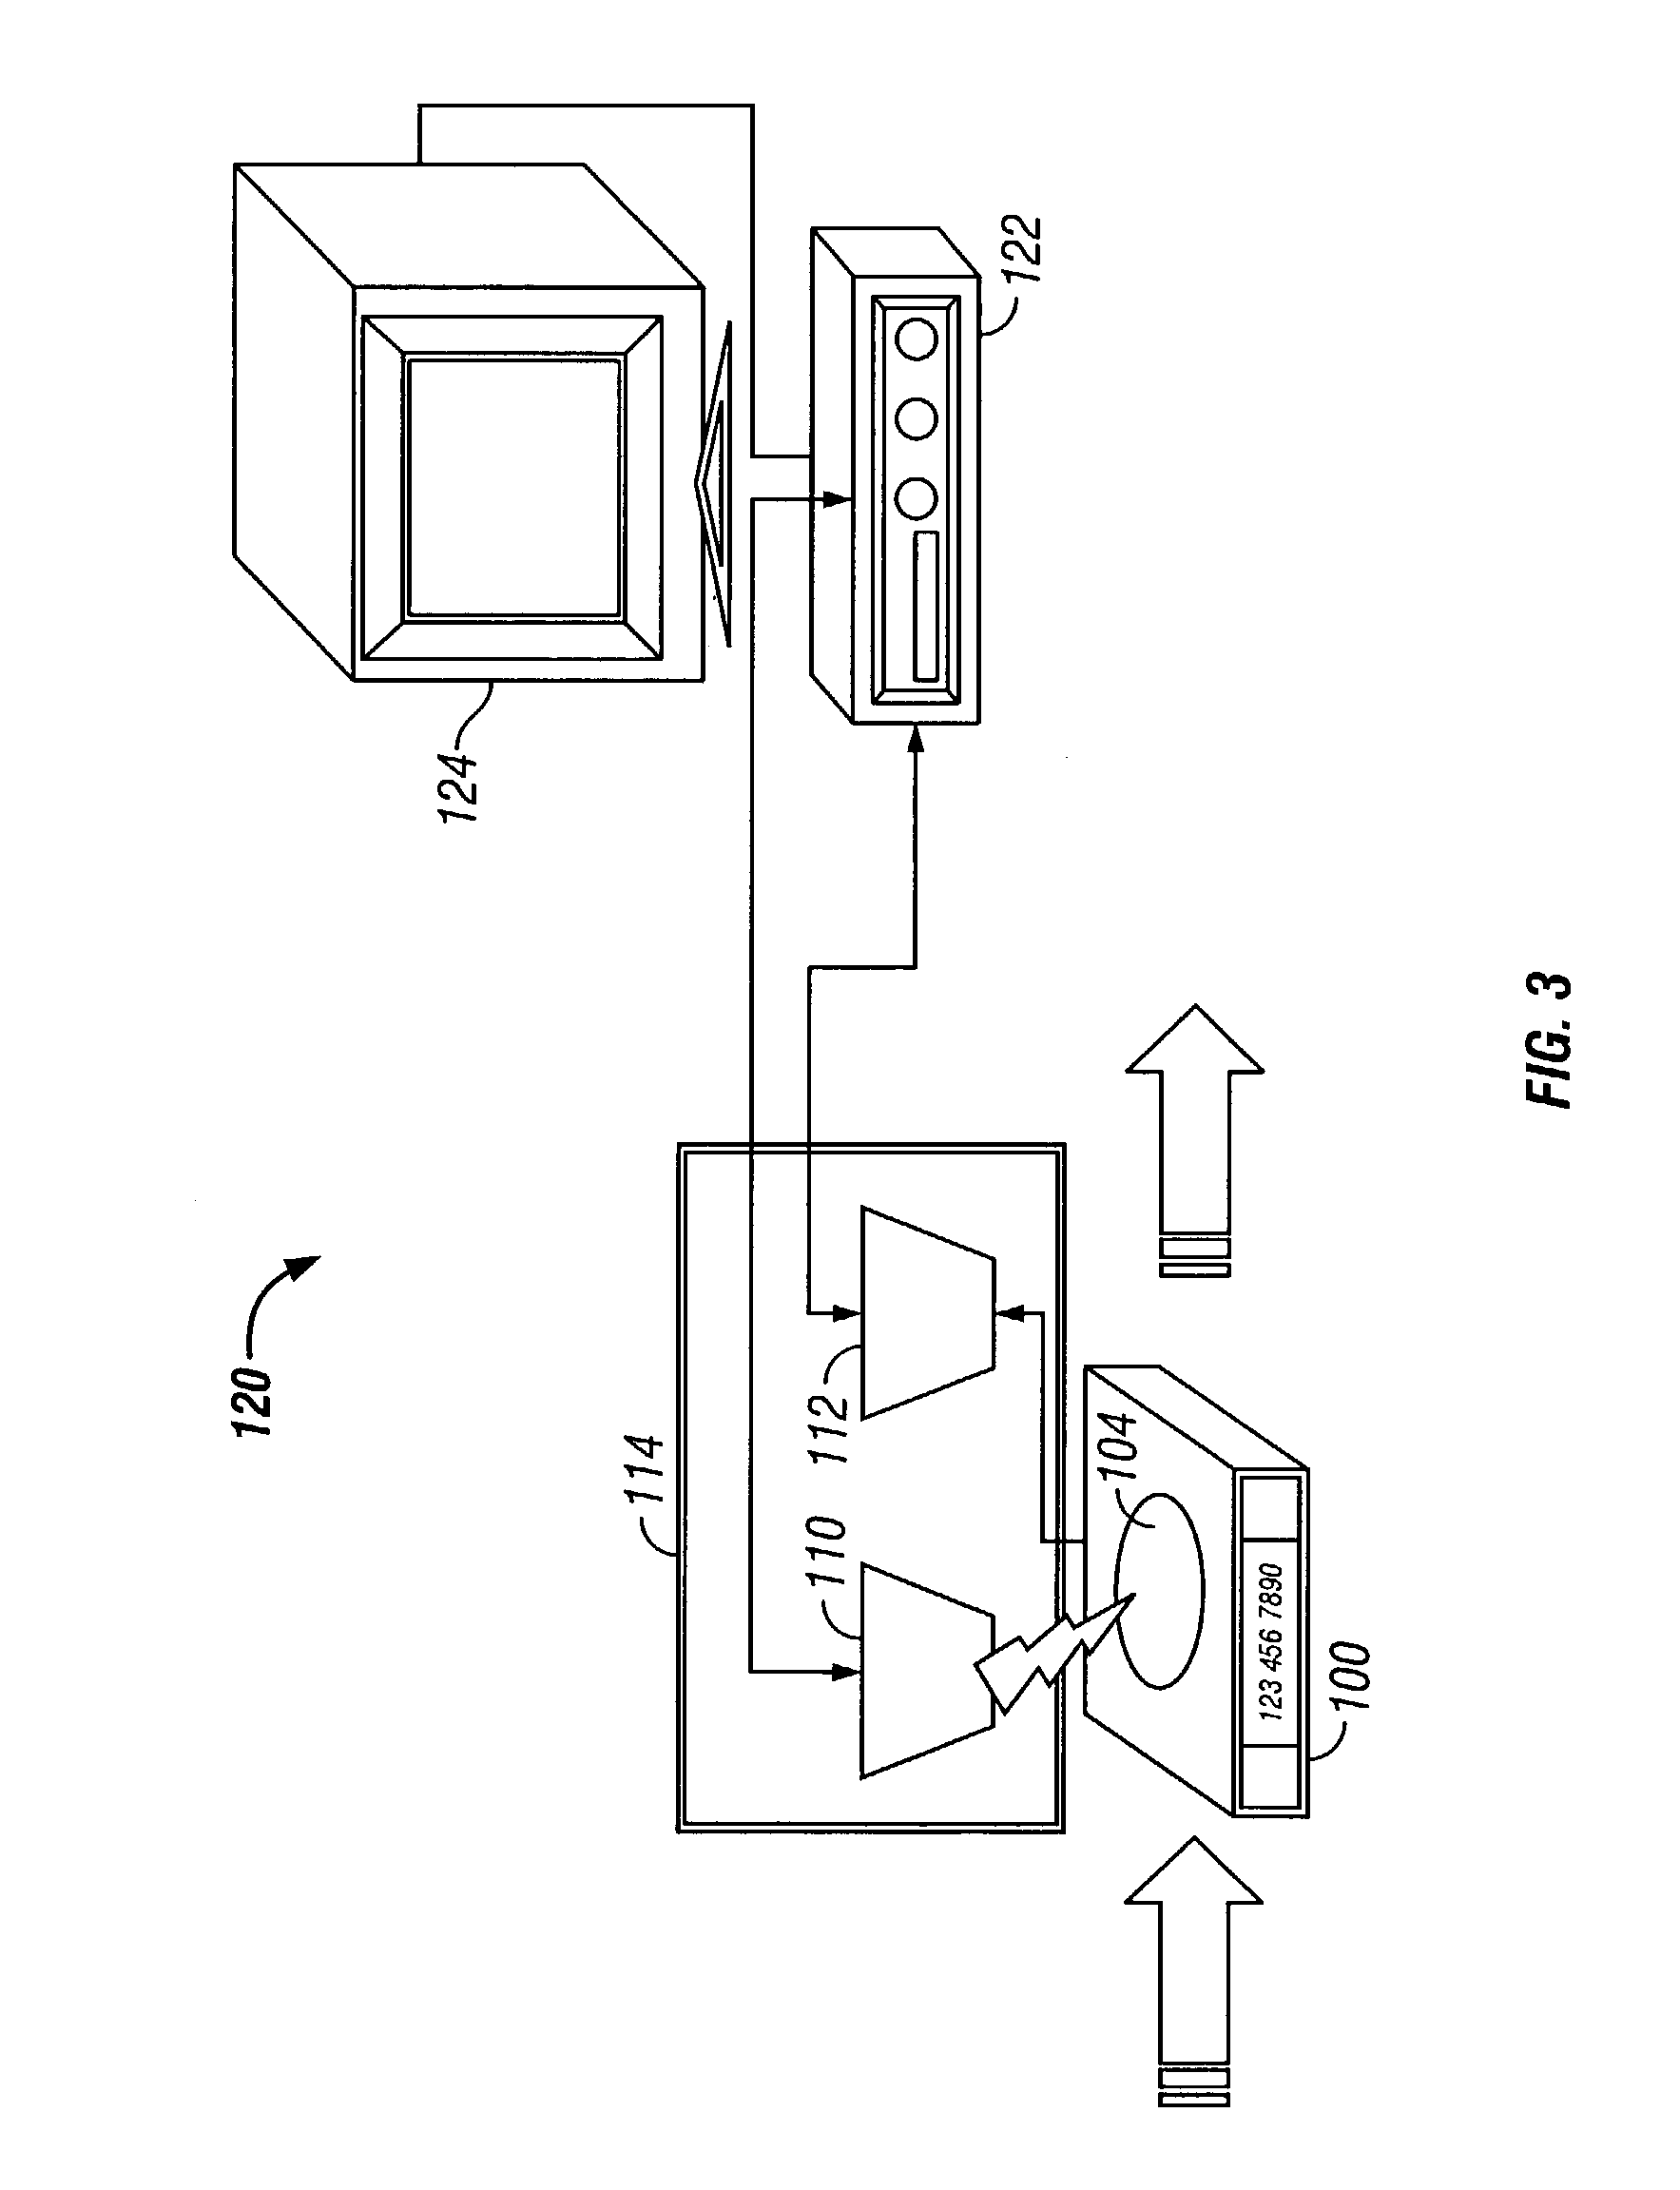 patent us7010647 - computer system with removable data storage device and method